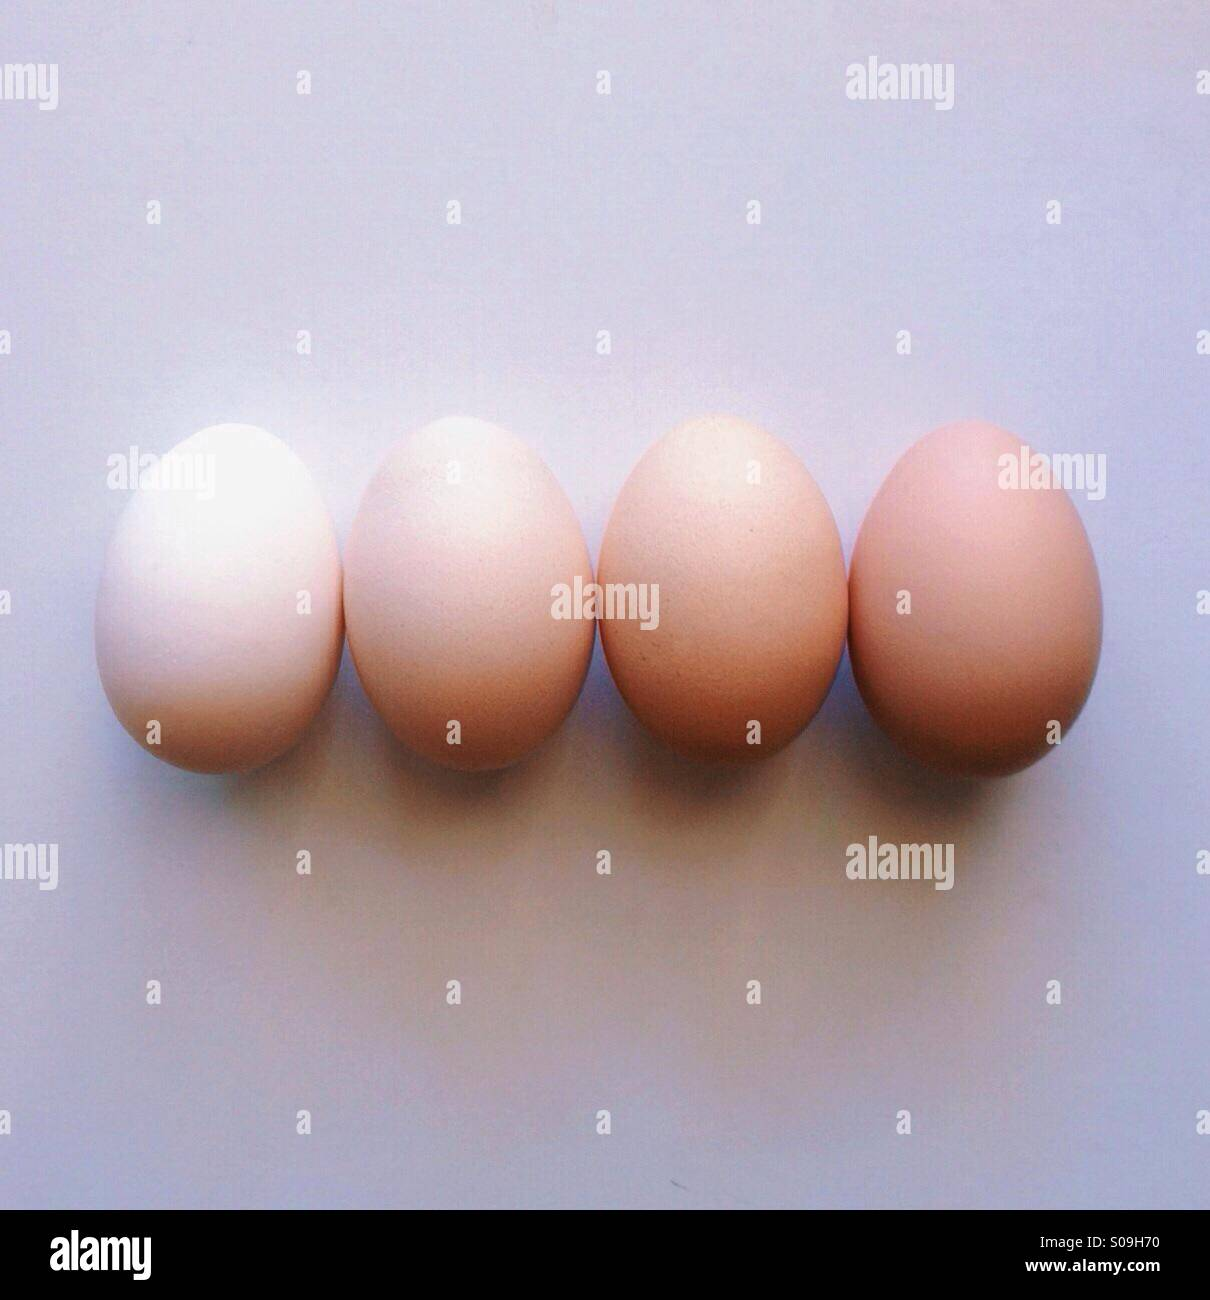 Ombregg - Stock Image